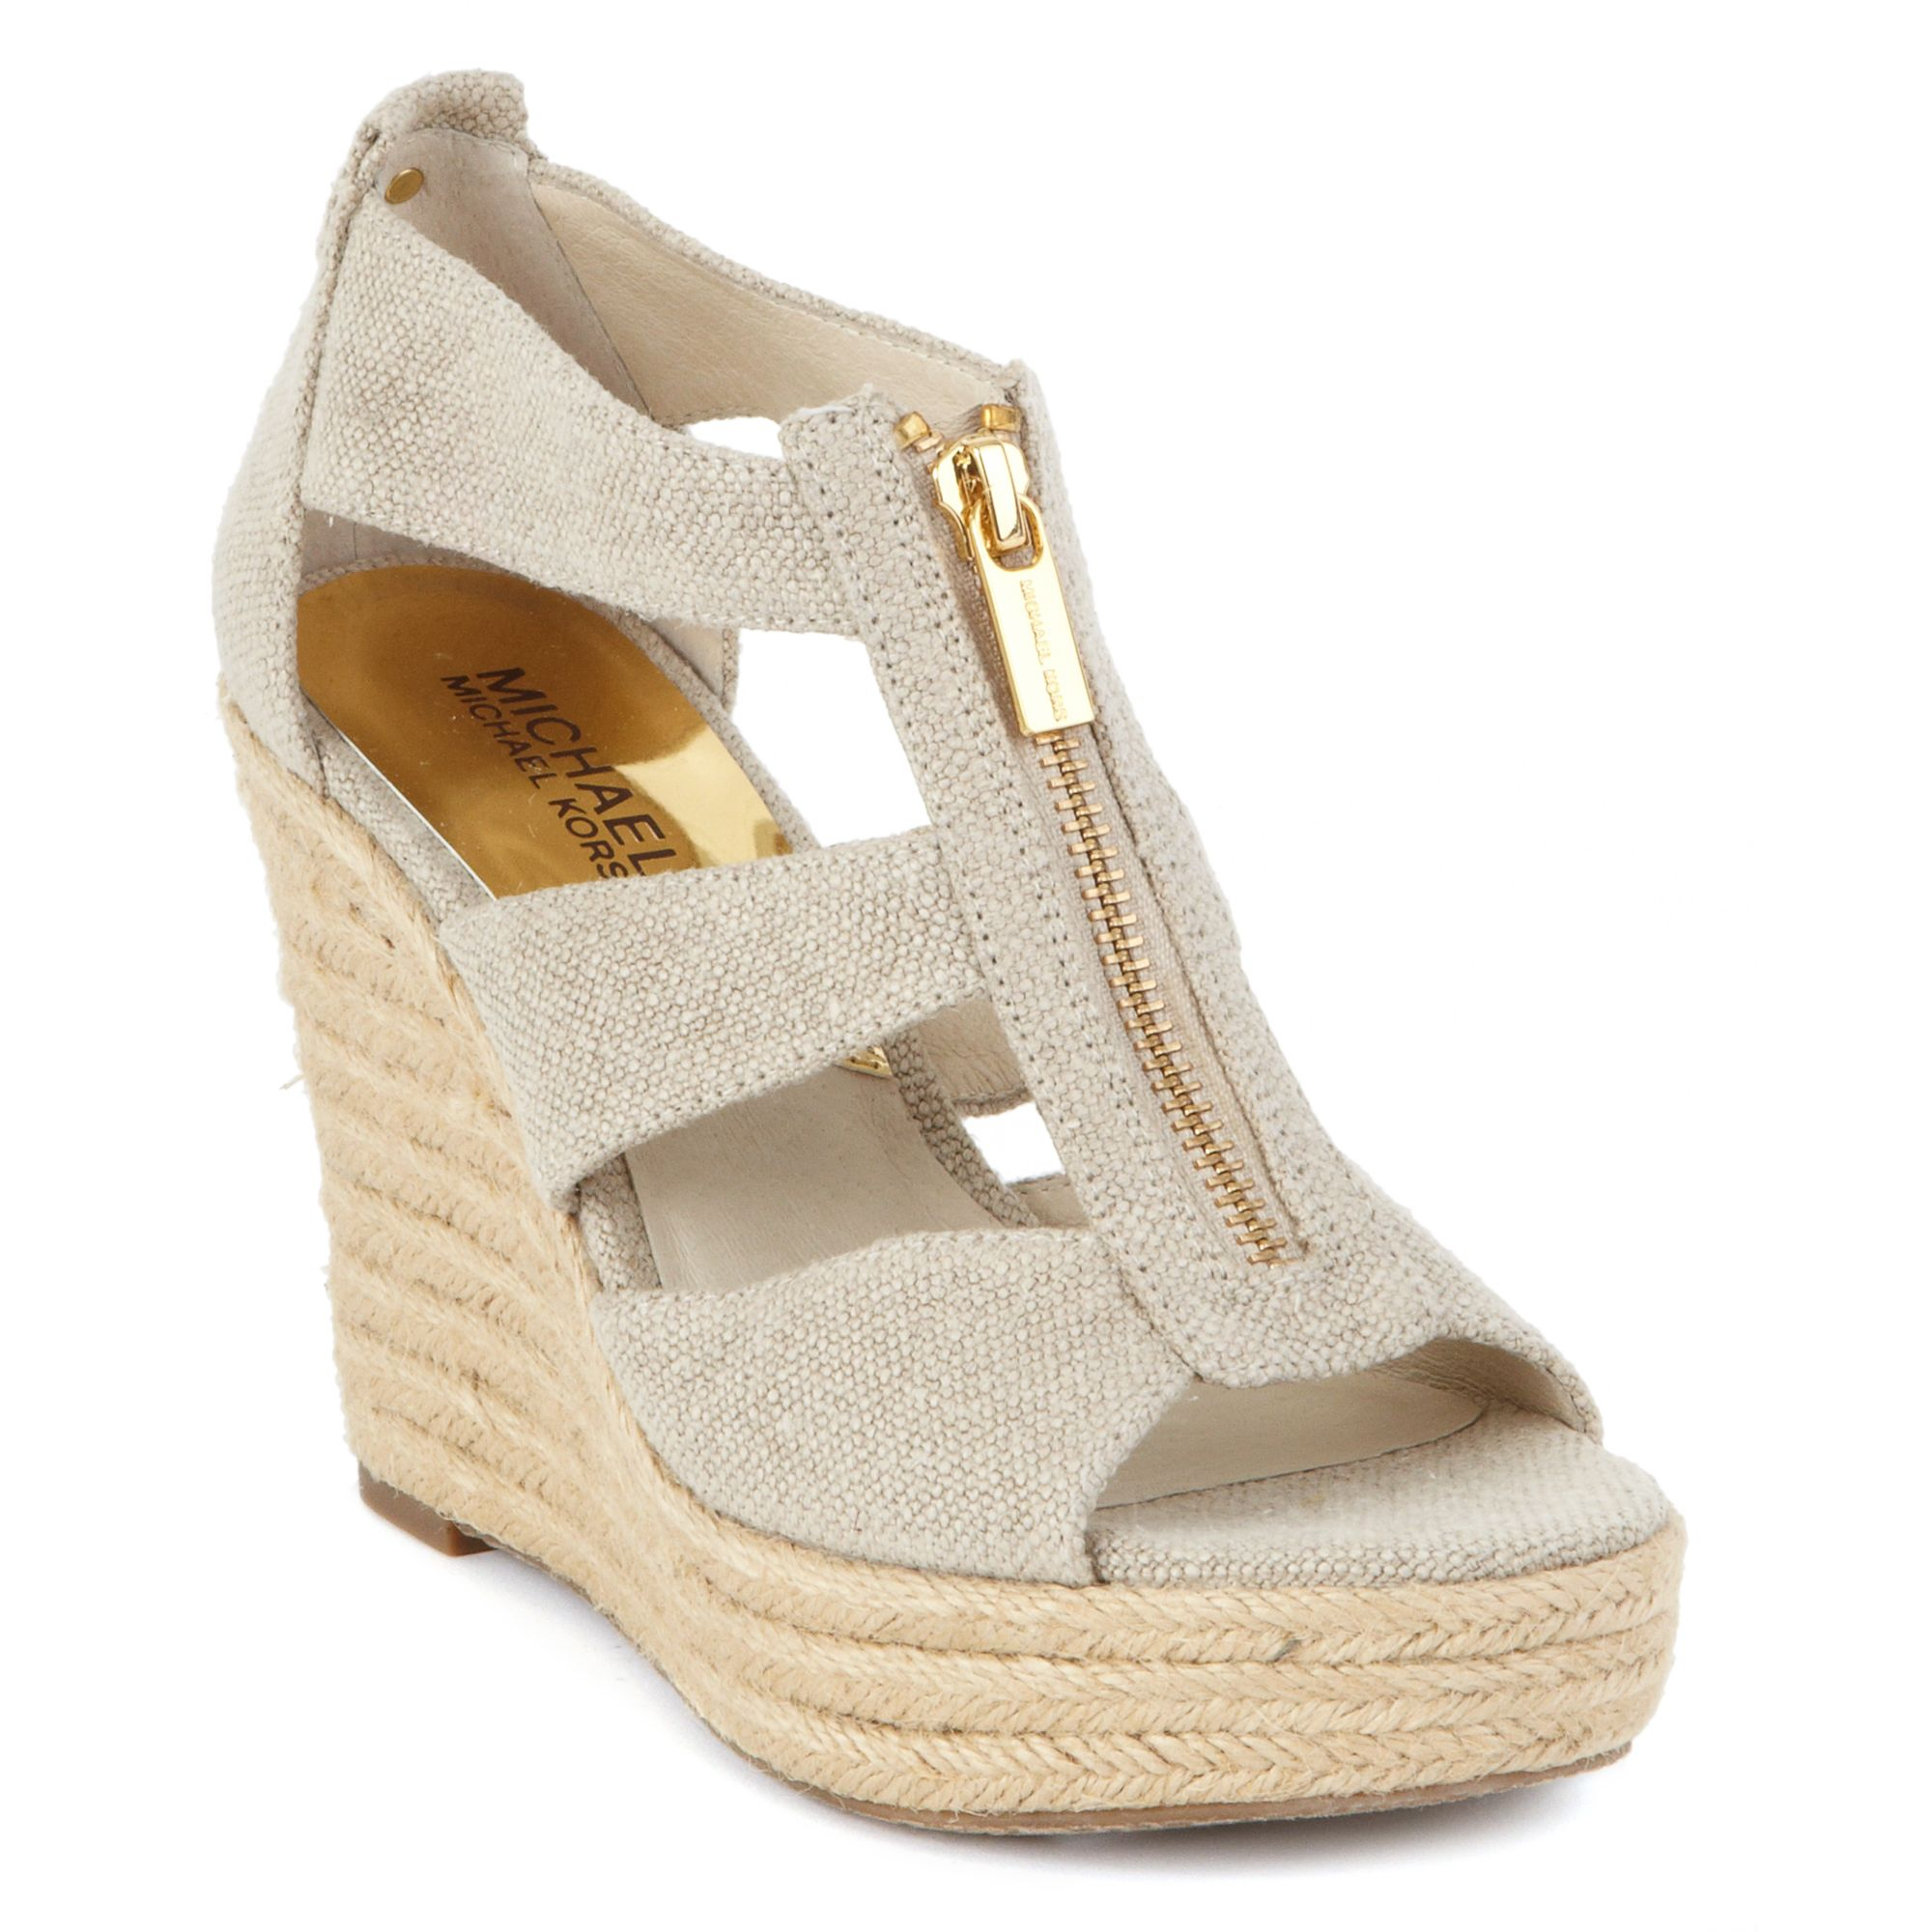 michael kors michael damita platform wedge sandals in